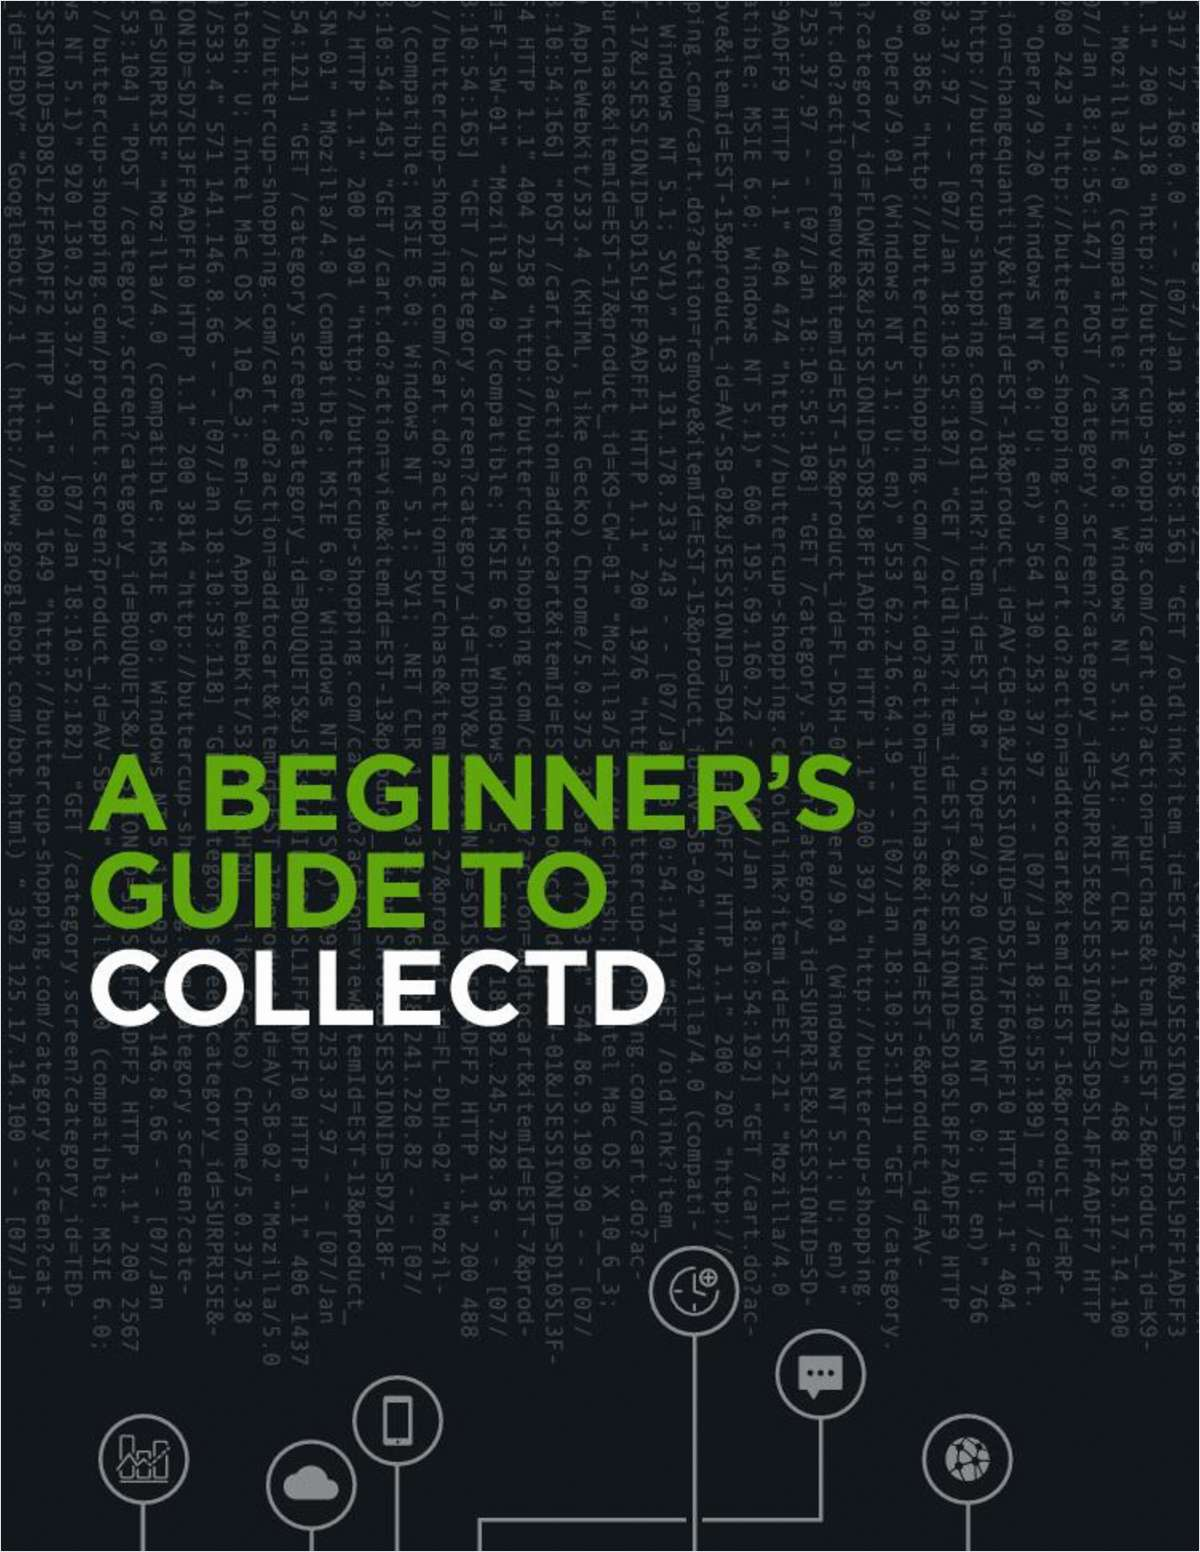 A Beginner's Guide to collectd